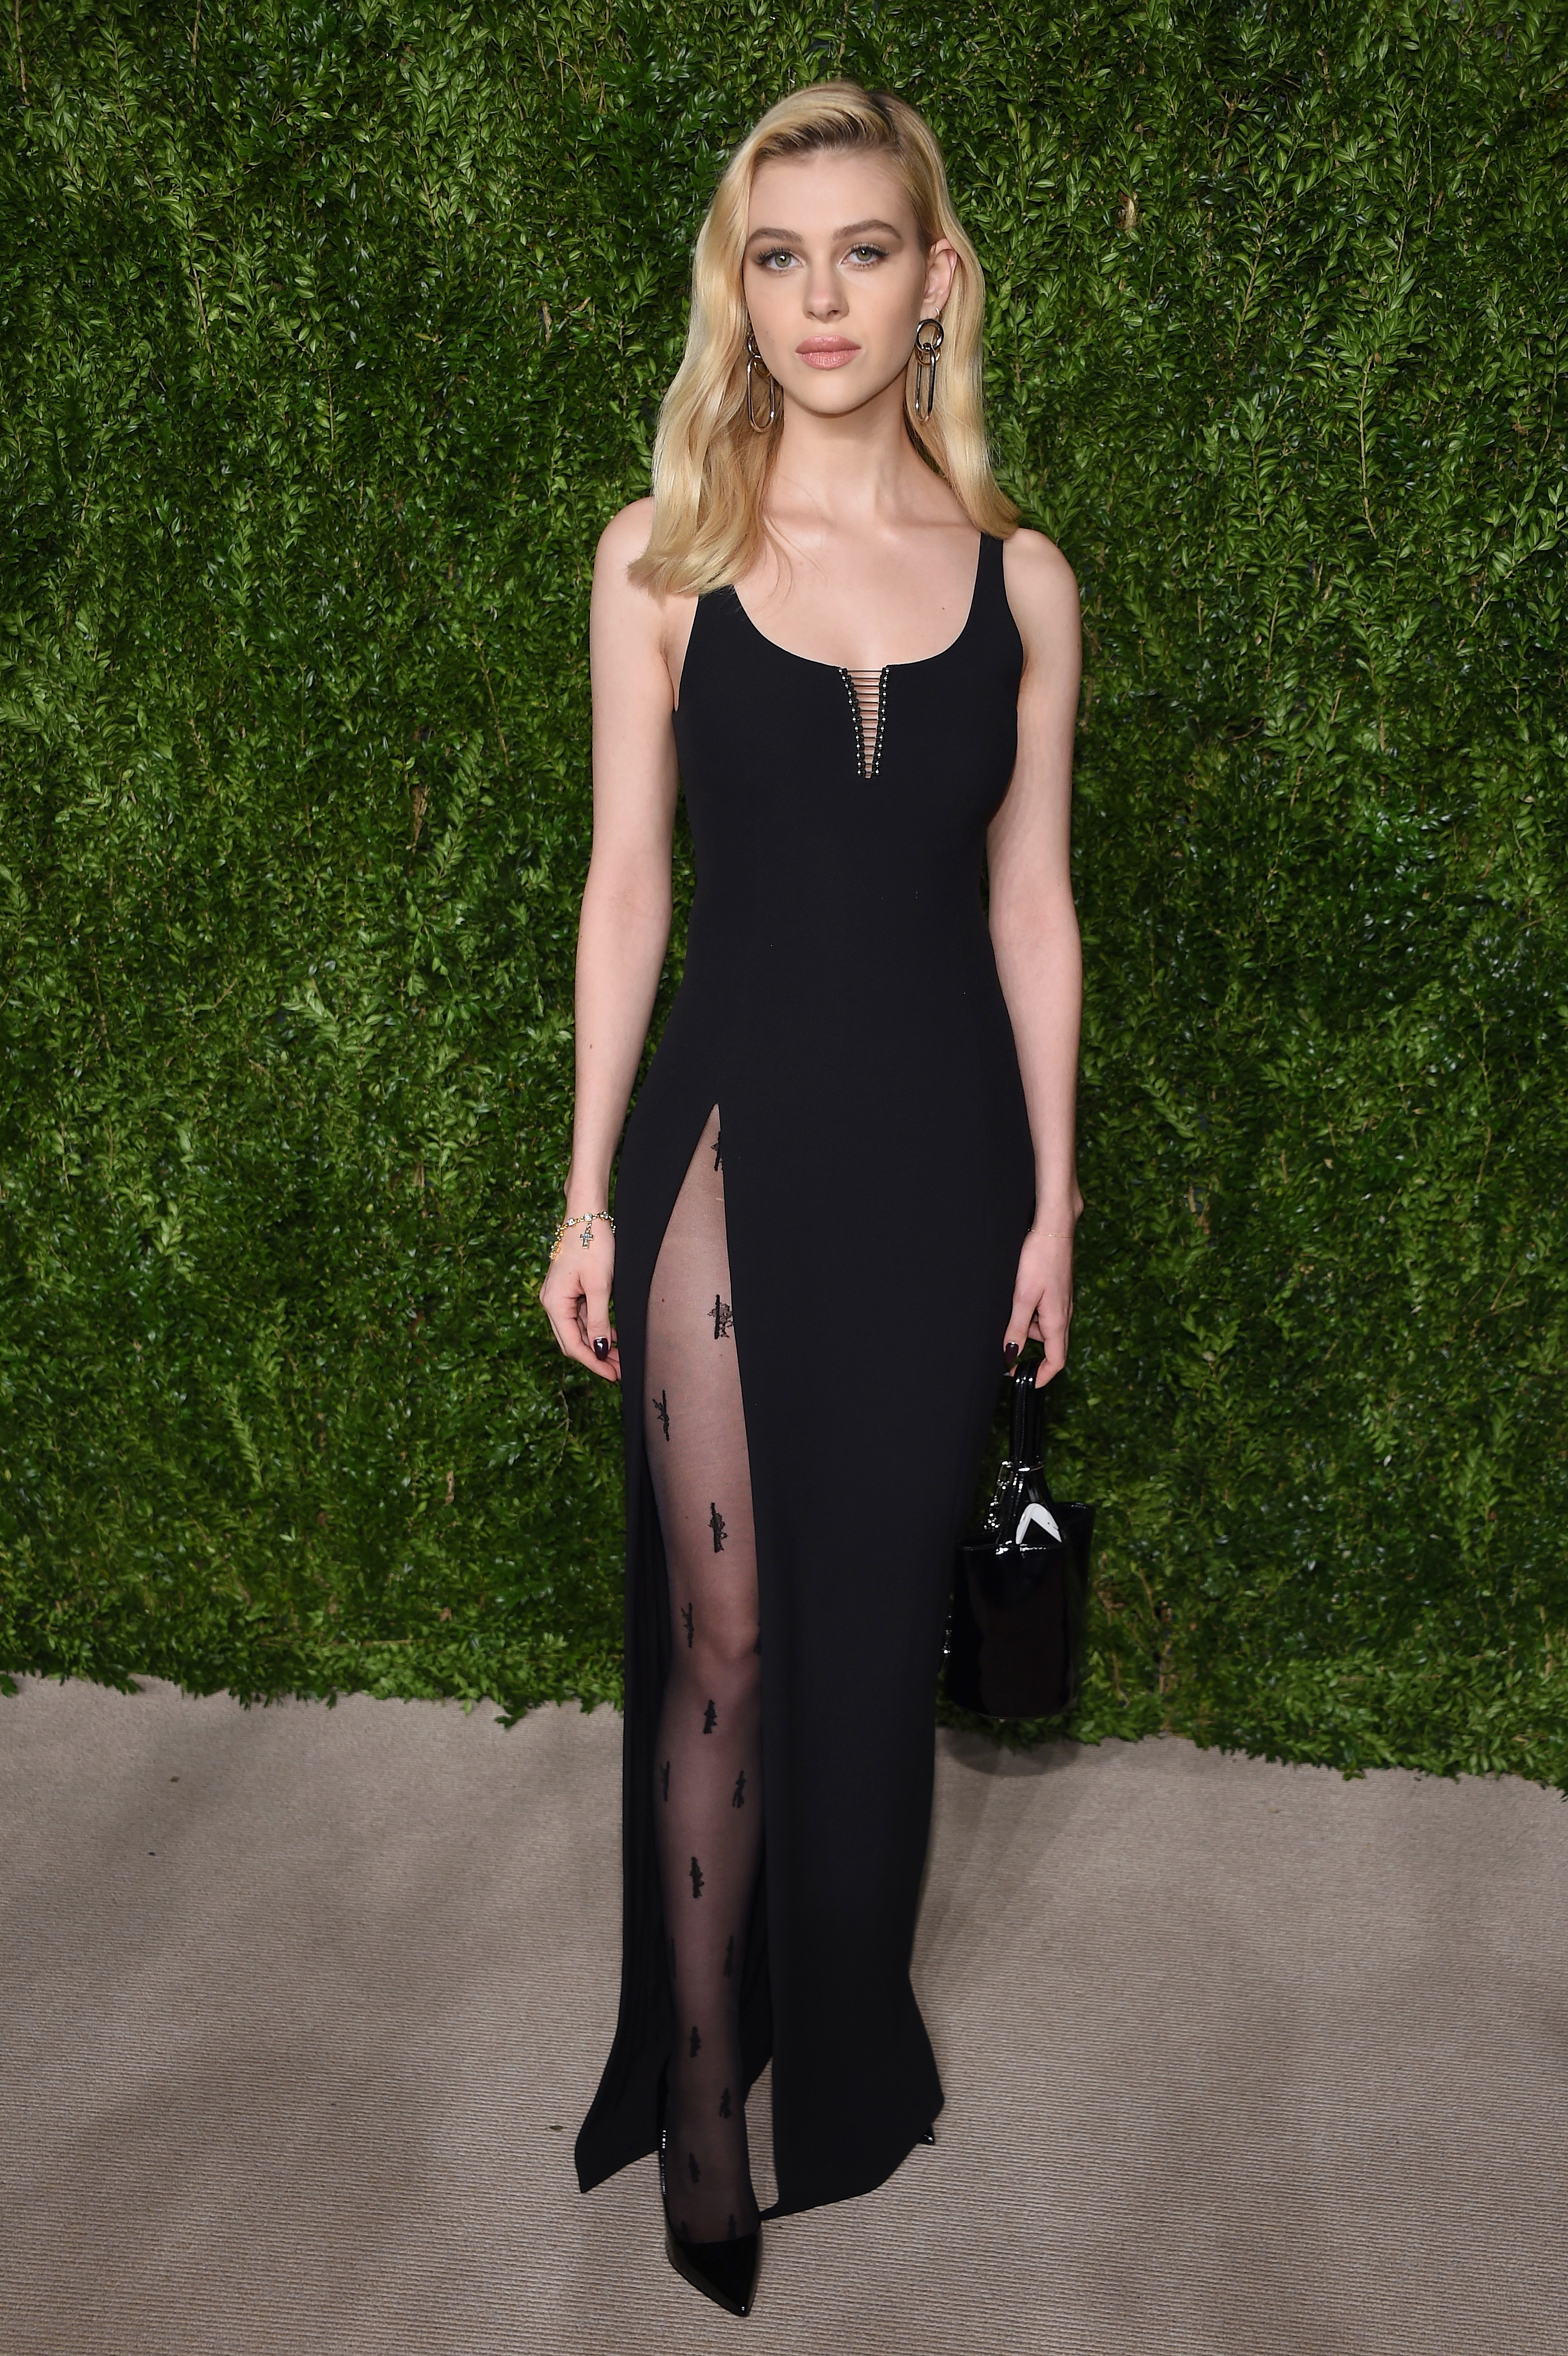 NEW YORK, NY - NOVEMBER 07: Nicola Peltz attends 13th Annual CFDA/Vogue Fashion Fund Awards at Spring Studios on November 7, 2016 in New York City. (Photo by Dimitrios Kambouris/Getty Images)